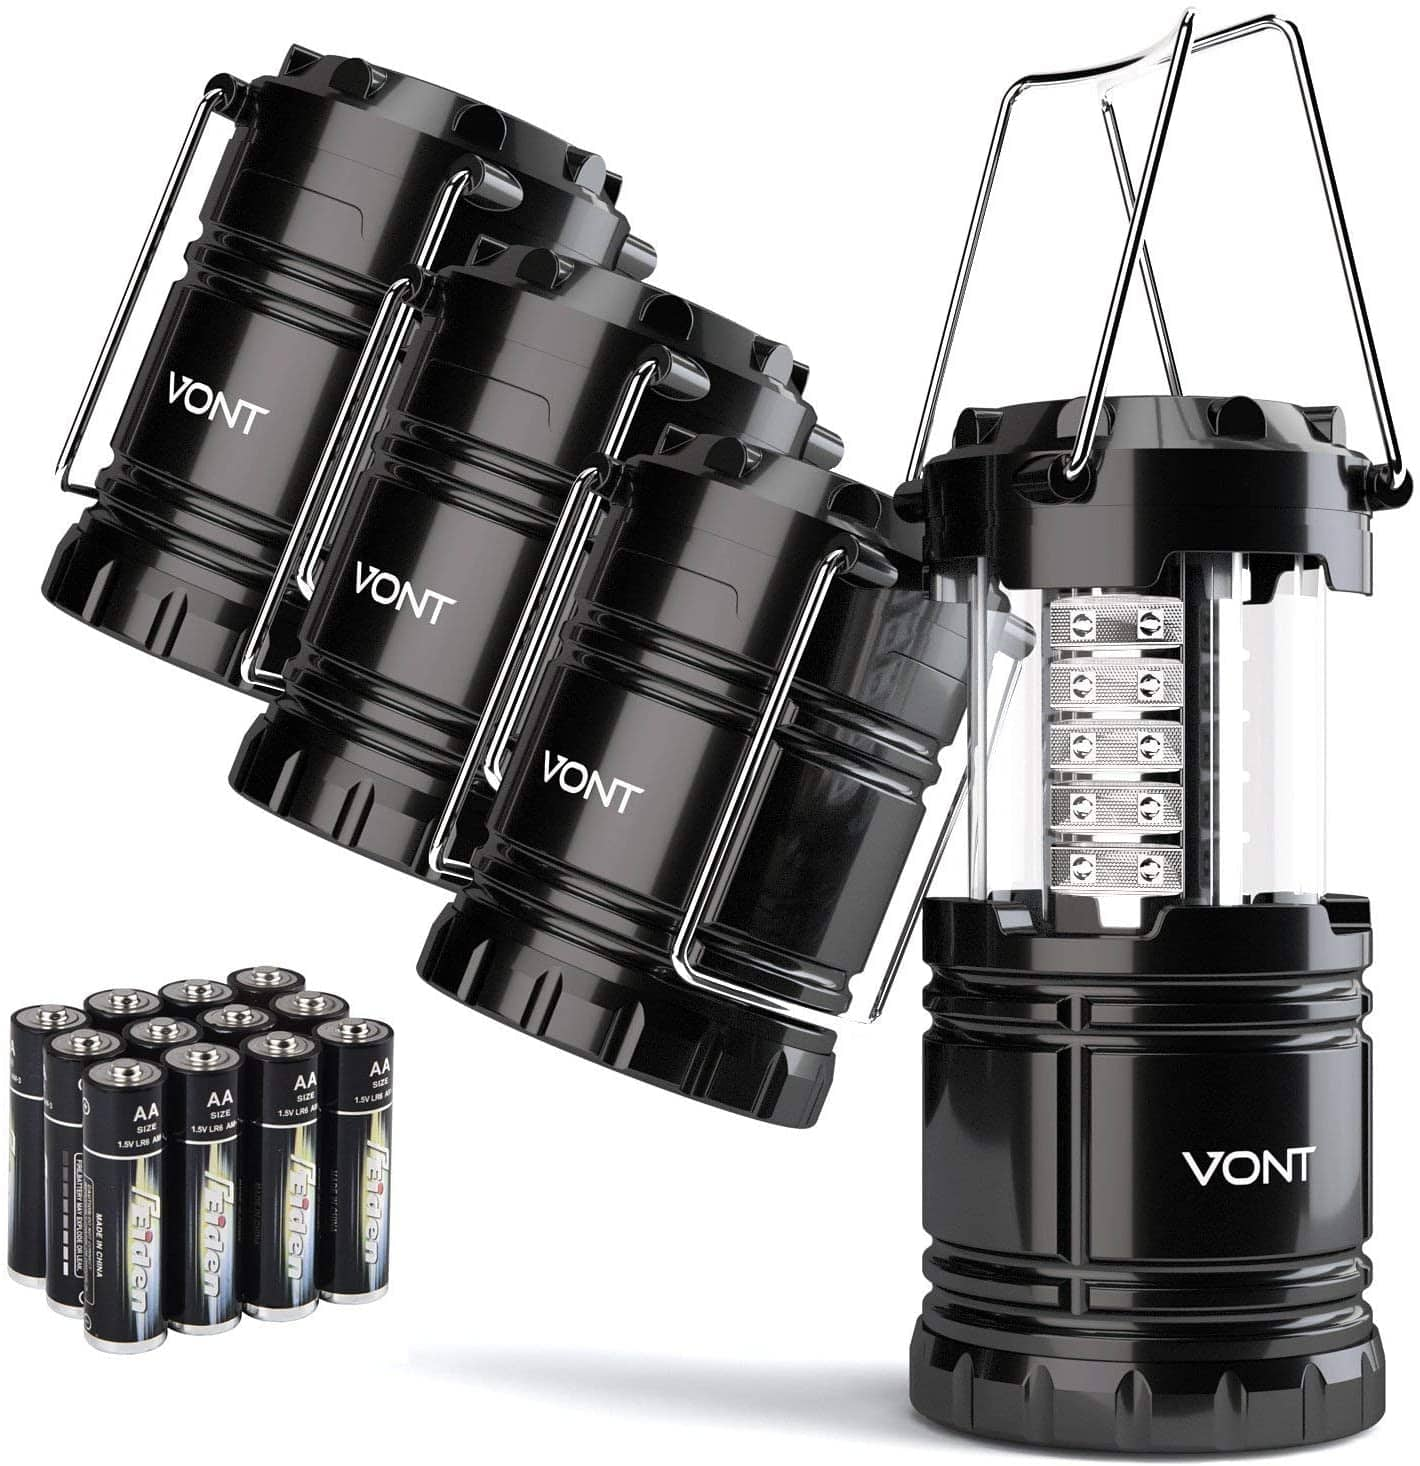 4-Pack Vont LED Collapsible Lanterns $15.99 + FS w/ Prime